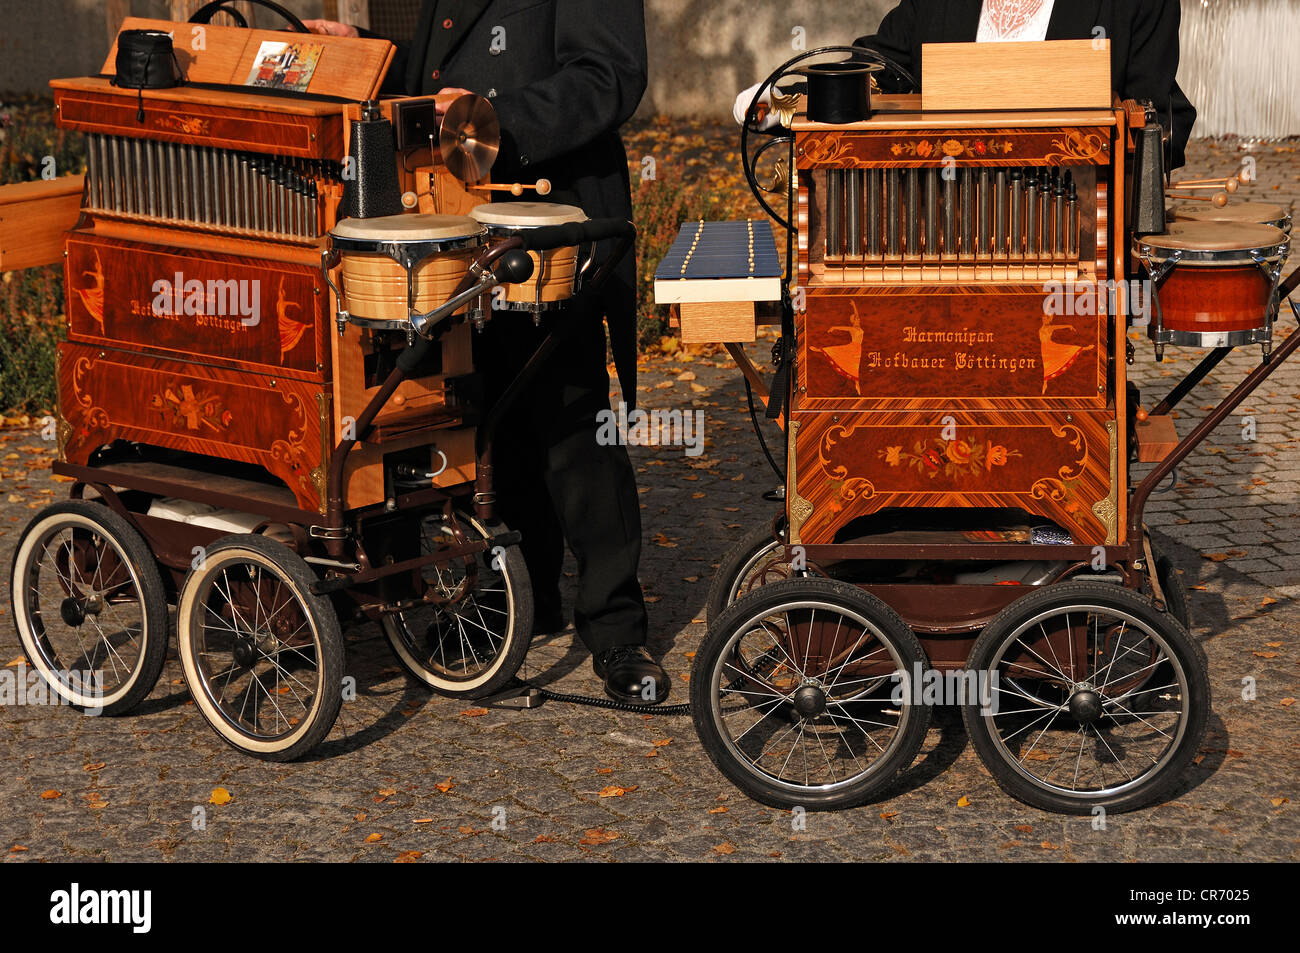 Two Harmonipans, barrel organs, street organs, Lahr, Baden-Wuerttemberg, Germany, Europe - Stock Image